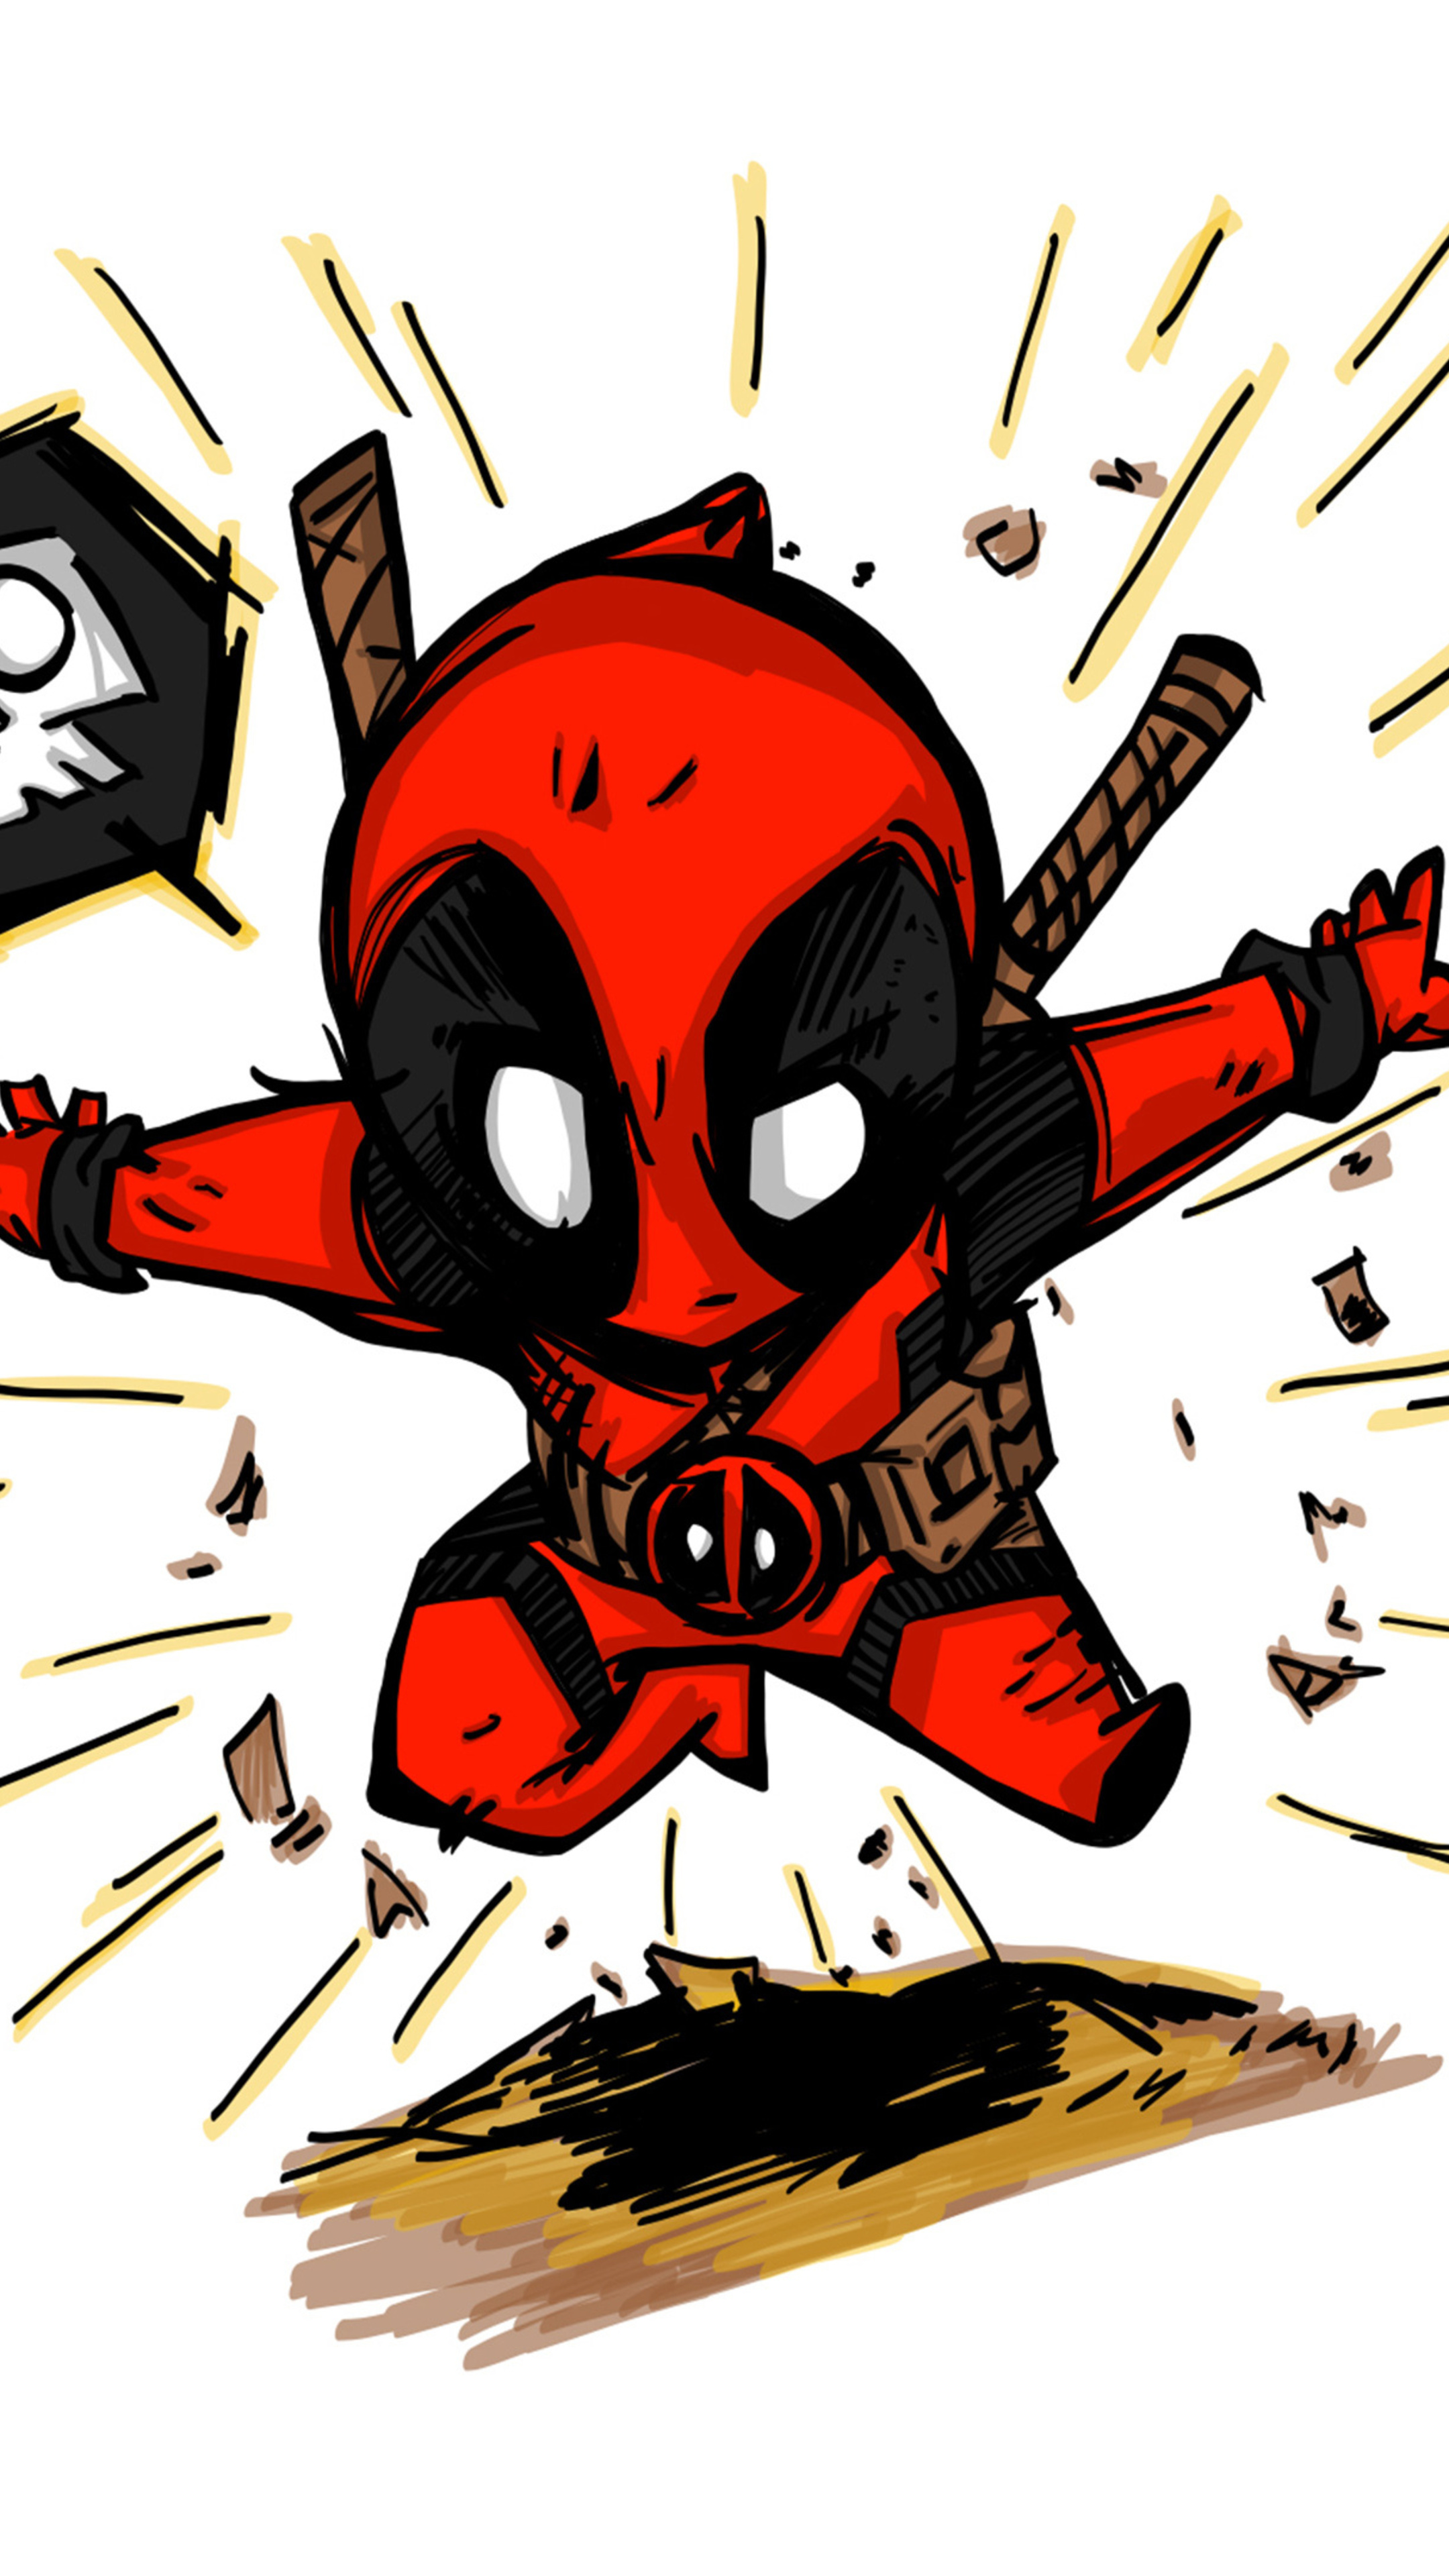 deadpool-2-art-4k-3h.jpg